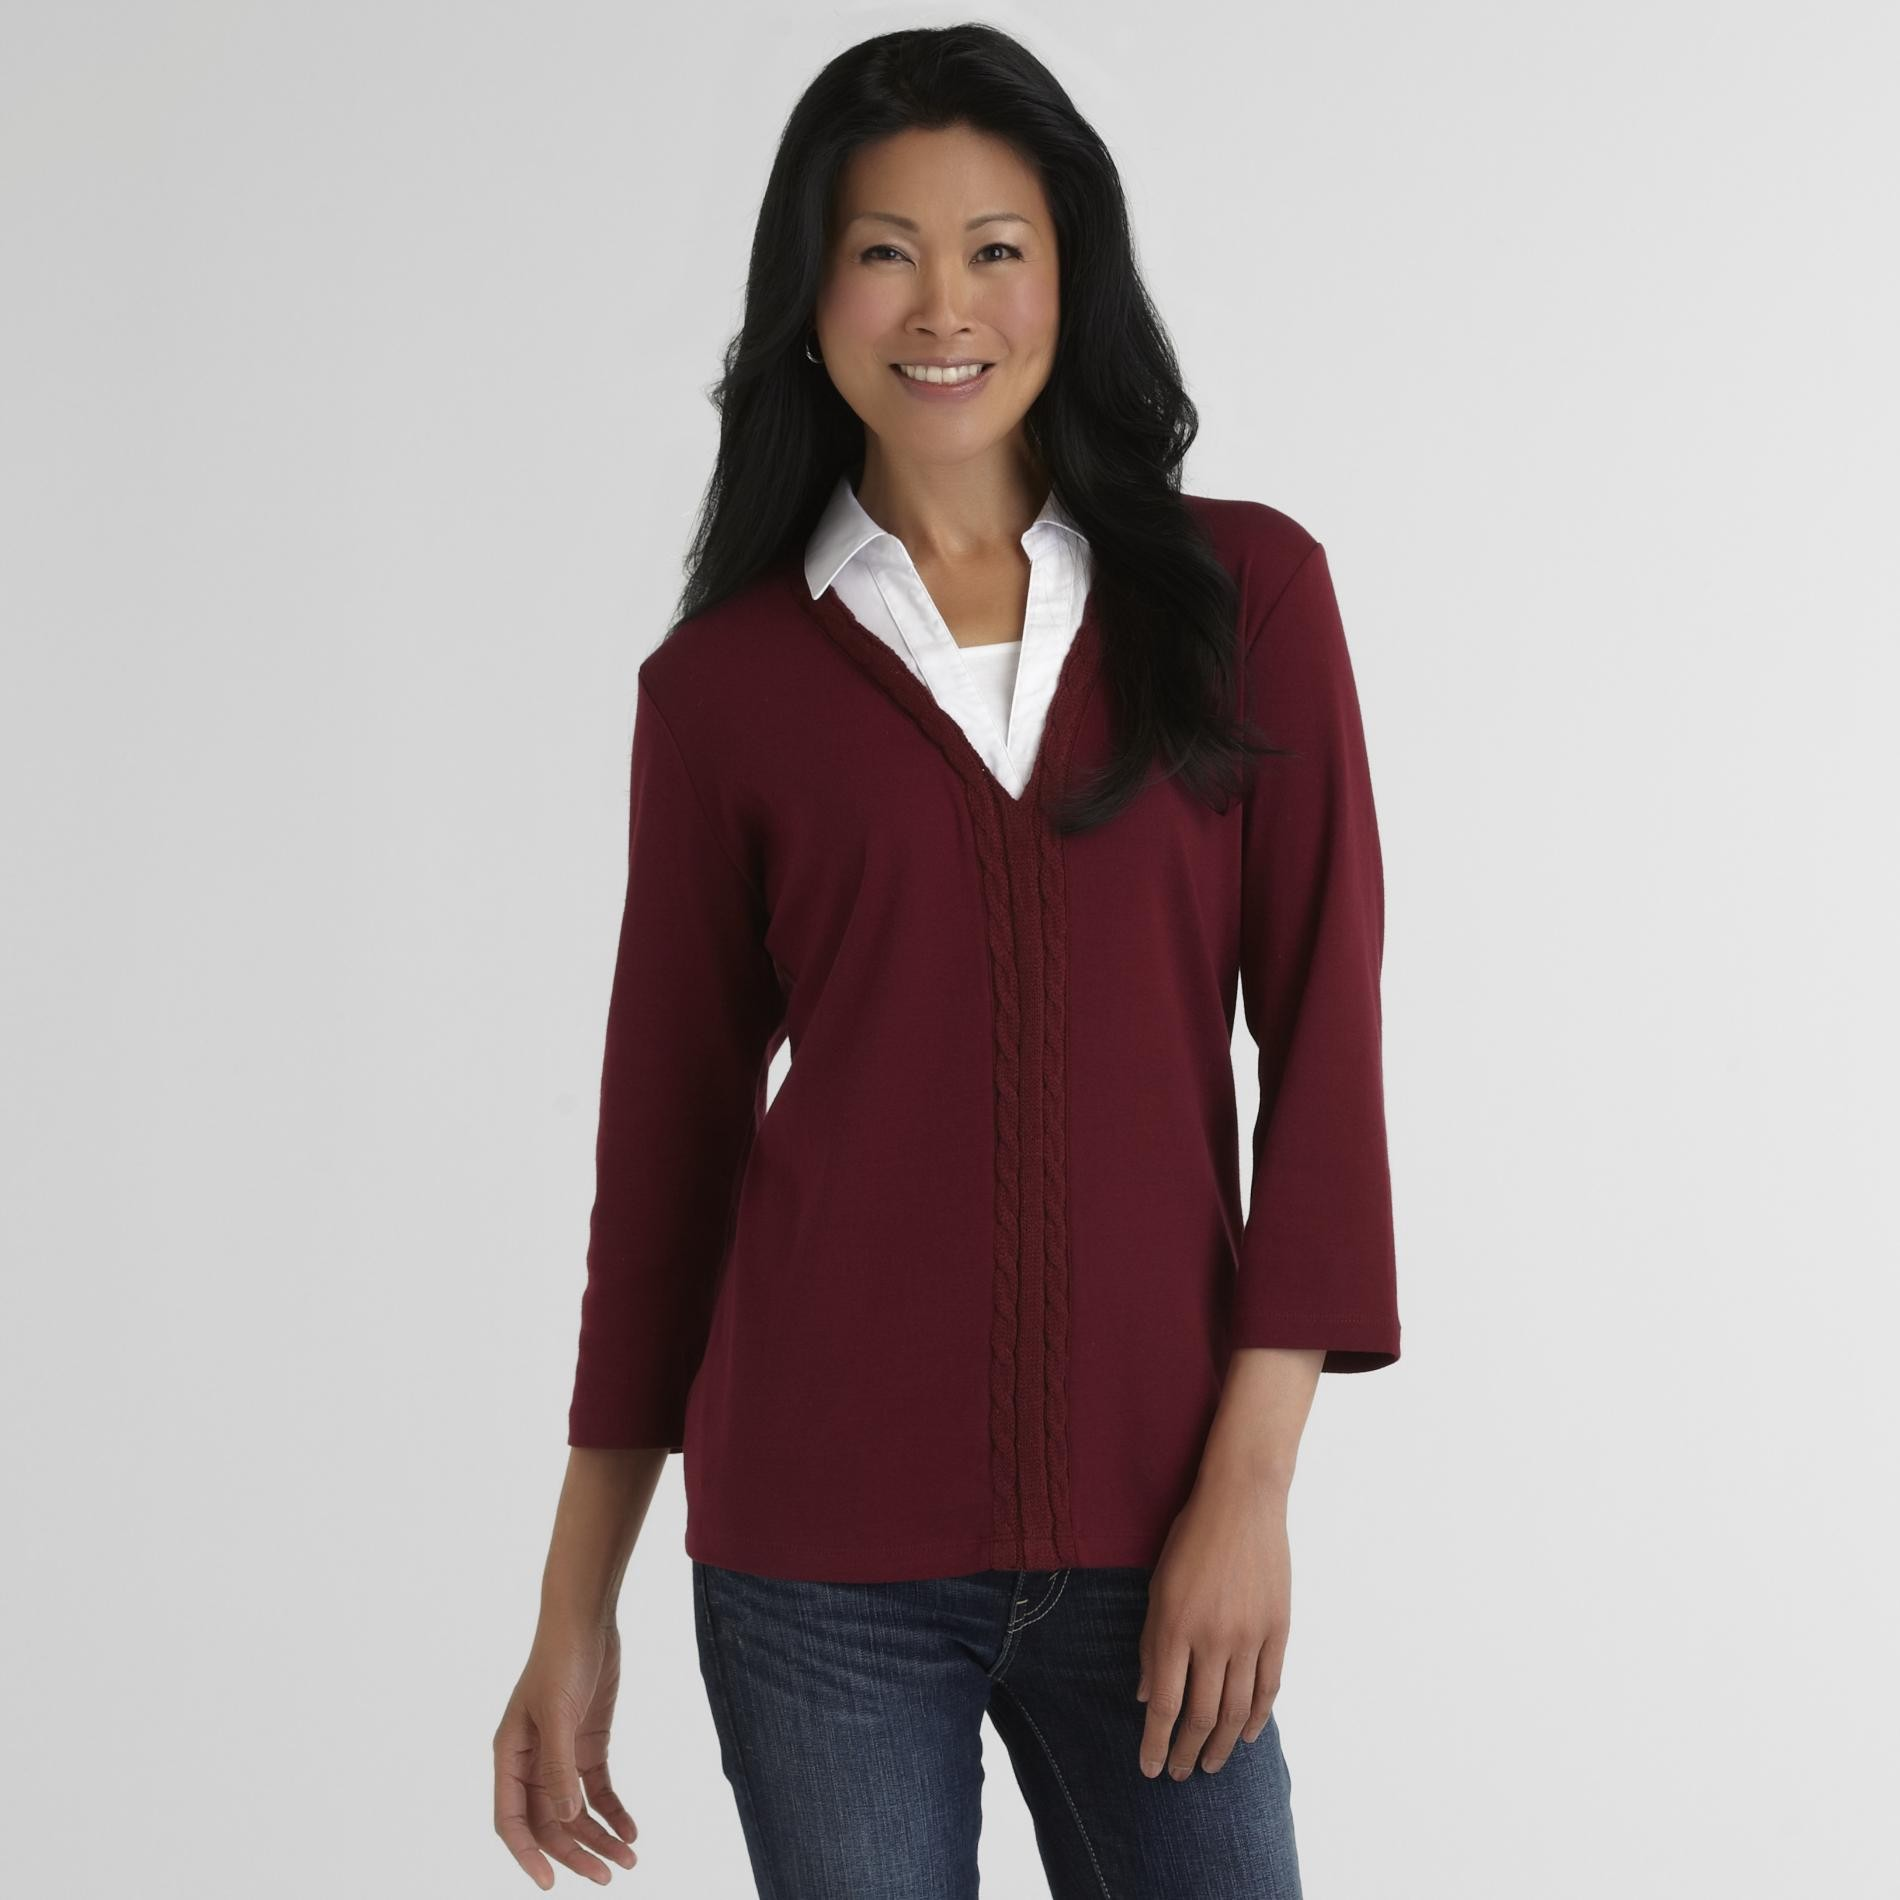 Laura Scott Women's Layered Knit Top - Cardigan Trim at Sears.com